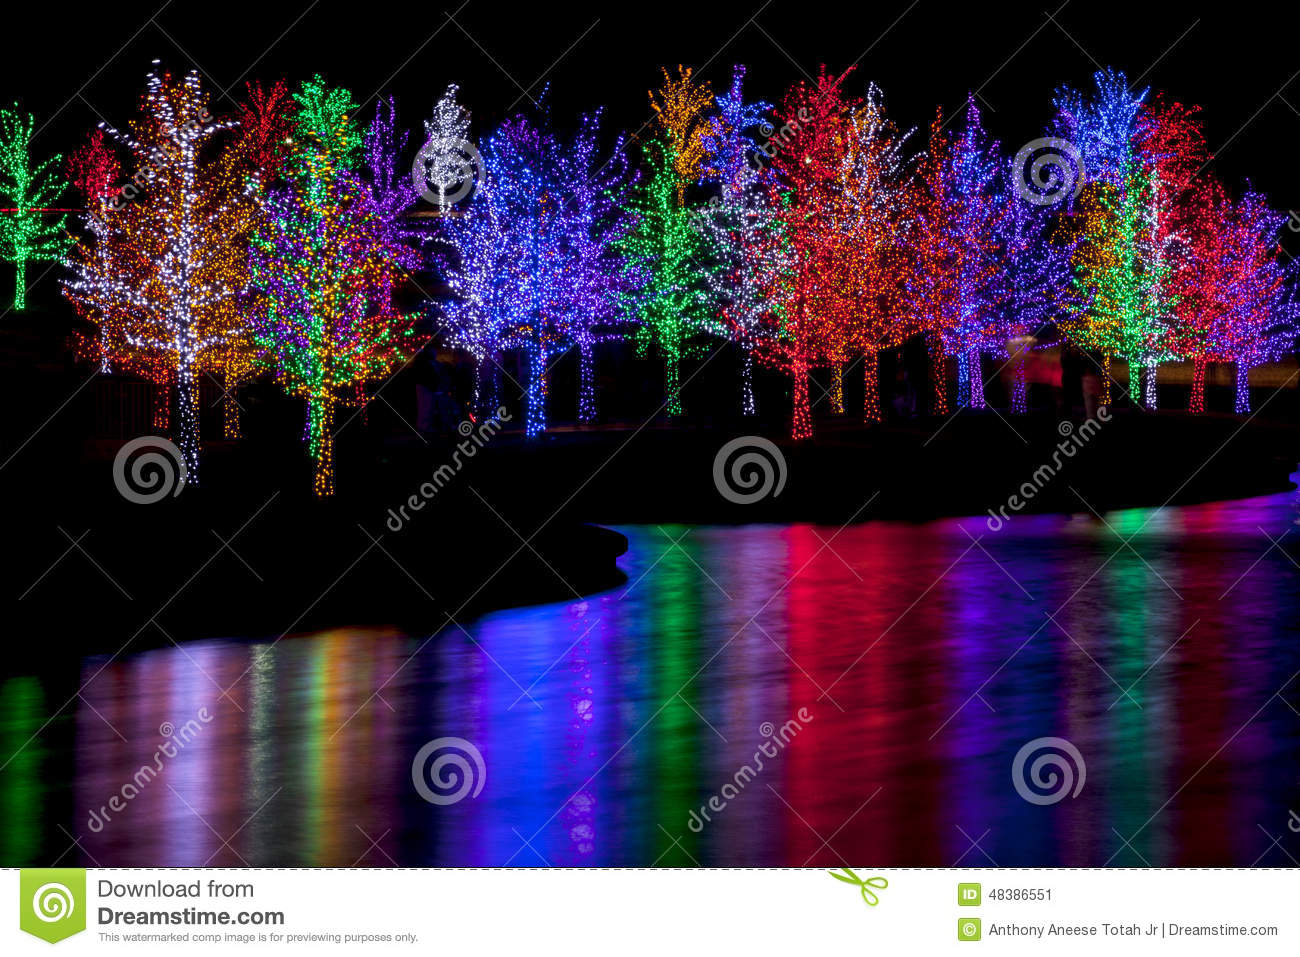 trees tightly wrapped in led lights for the christmas holidays reflecting in lake each tree is wrapped in one color